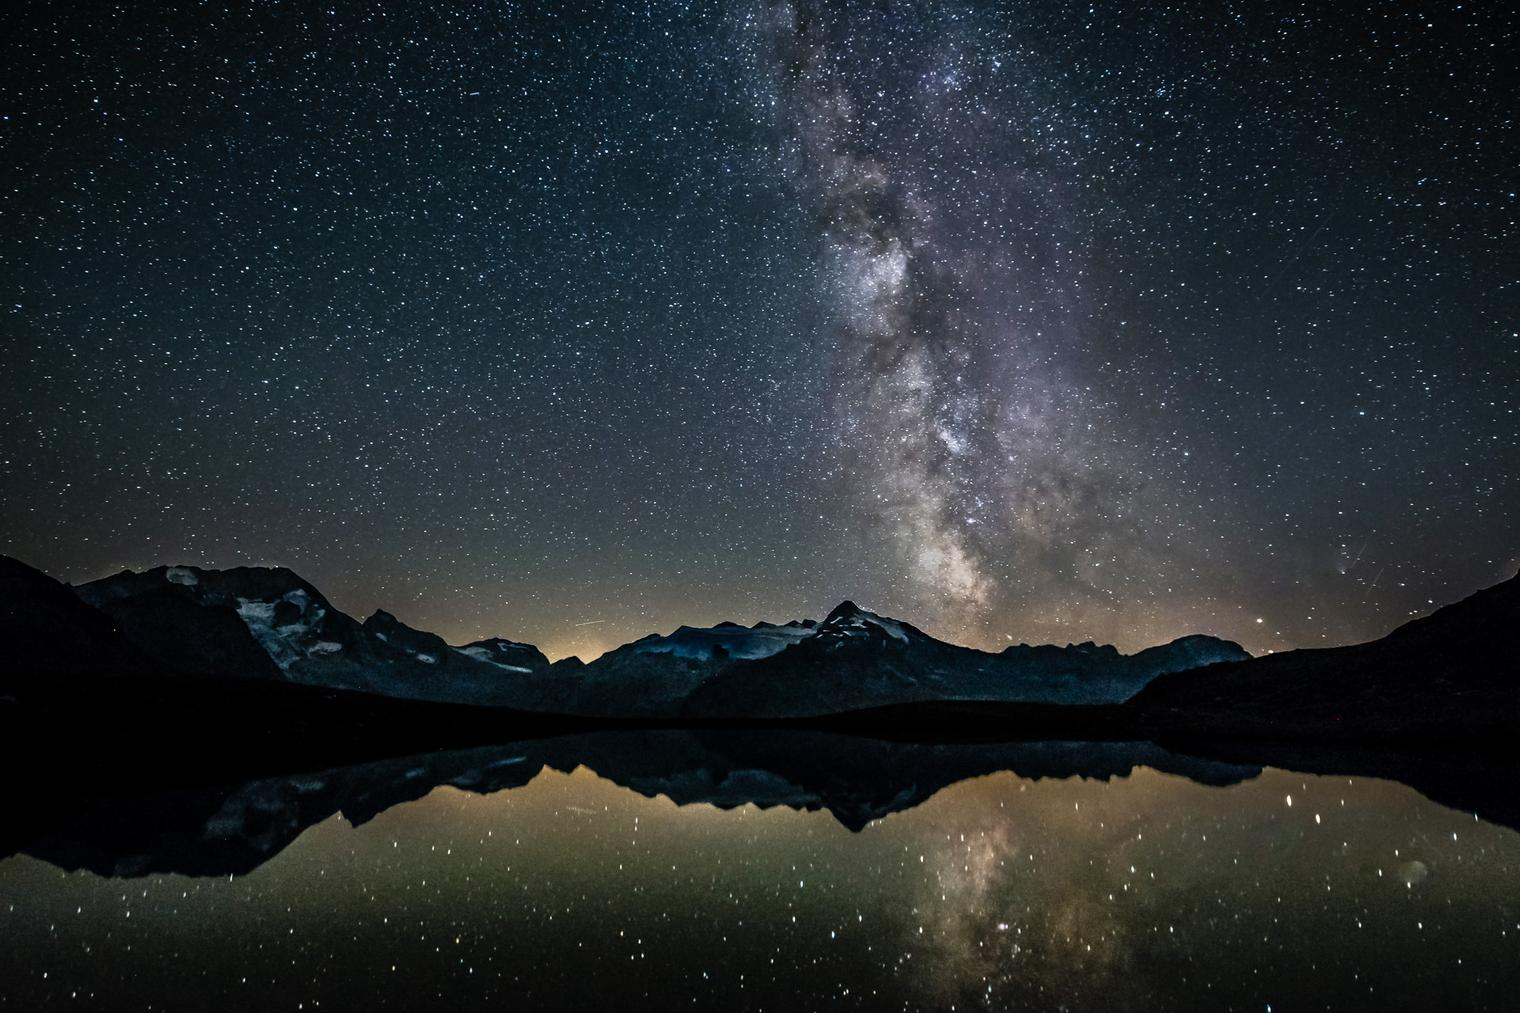 Lightroom Presets for Astrophotography